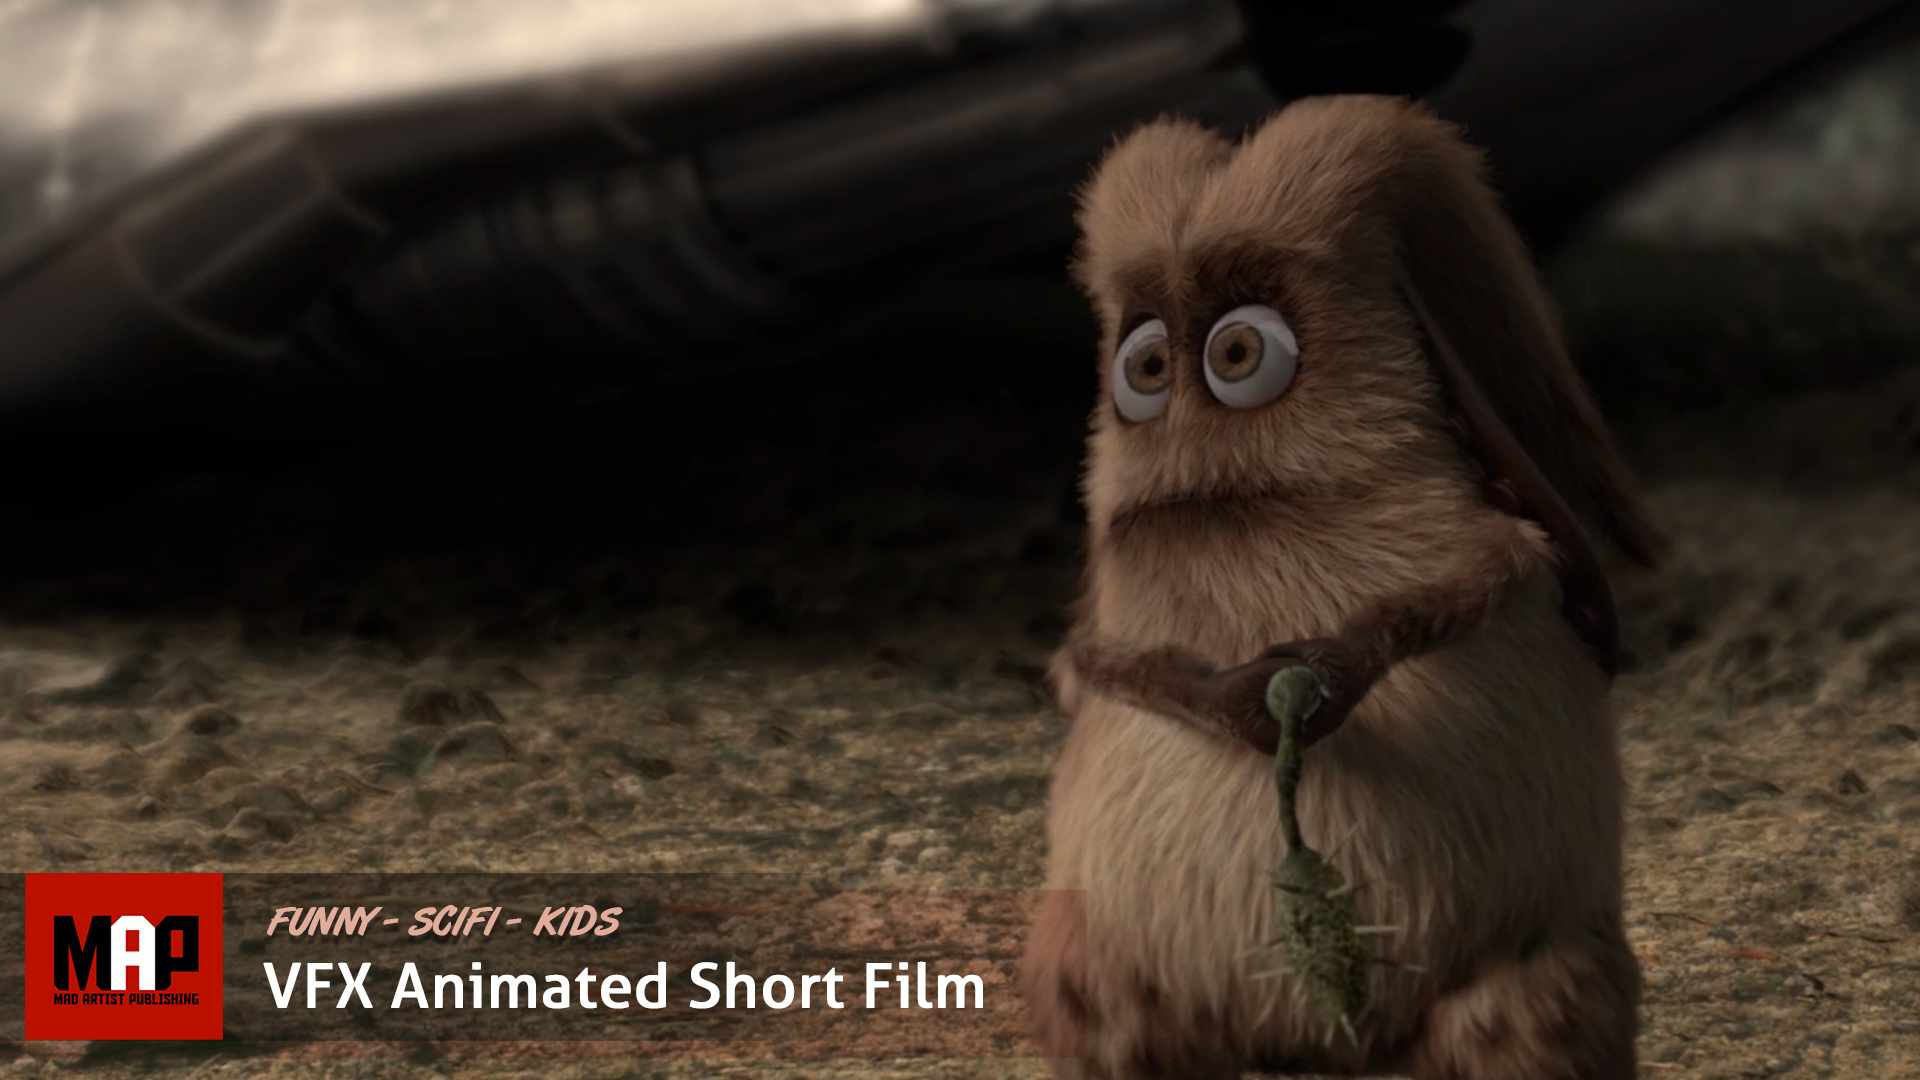 CGI Animated Short Film ** WHAT THE FUR! ** Funny SciFi animated kids short by Objectif3d Team